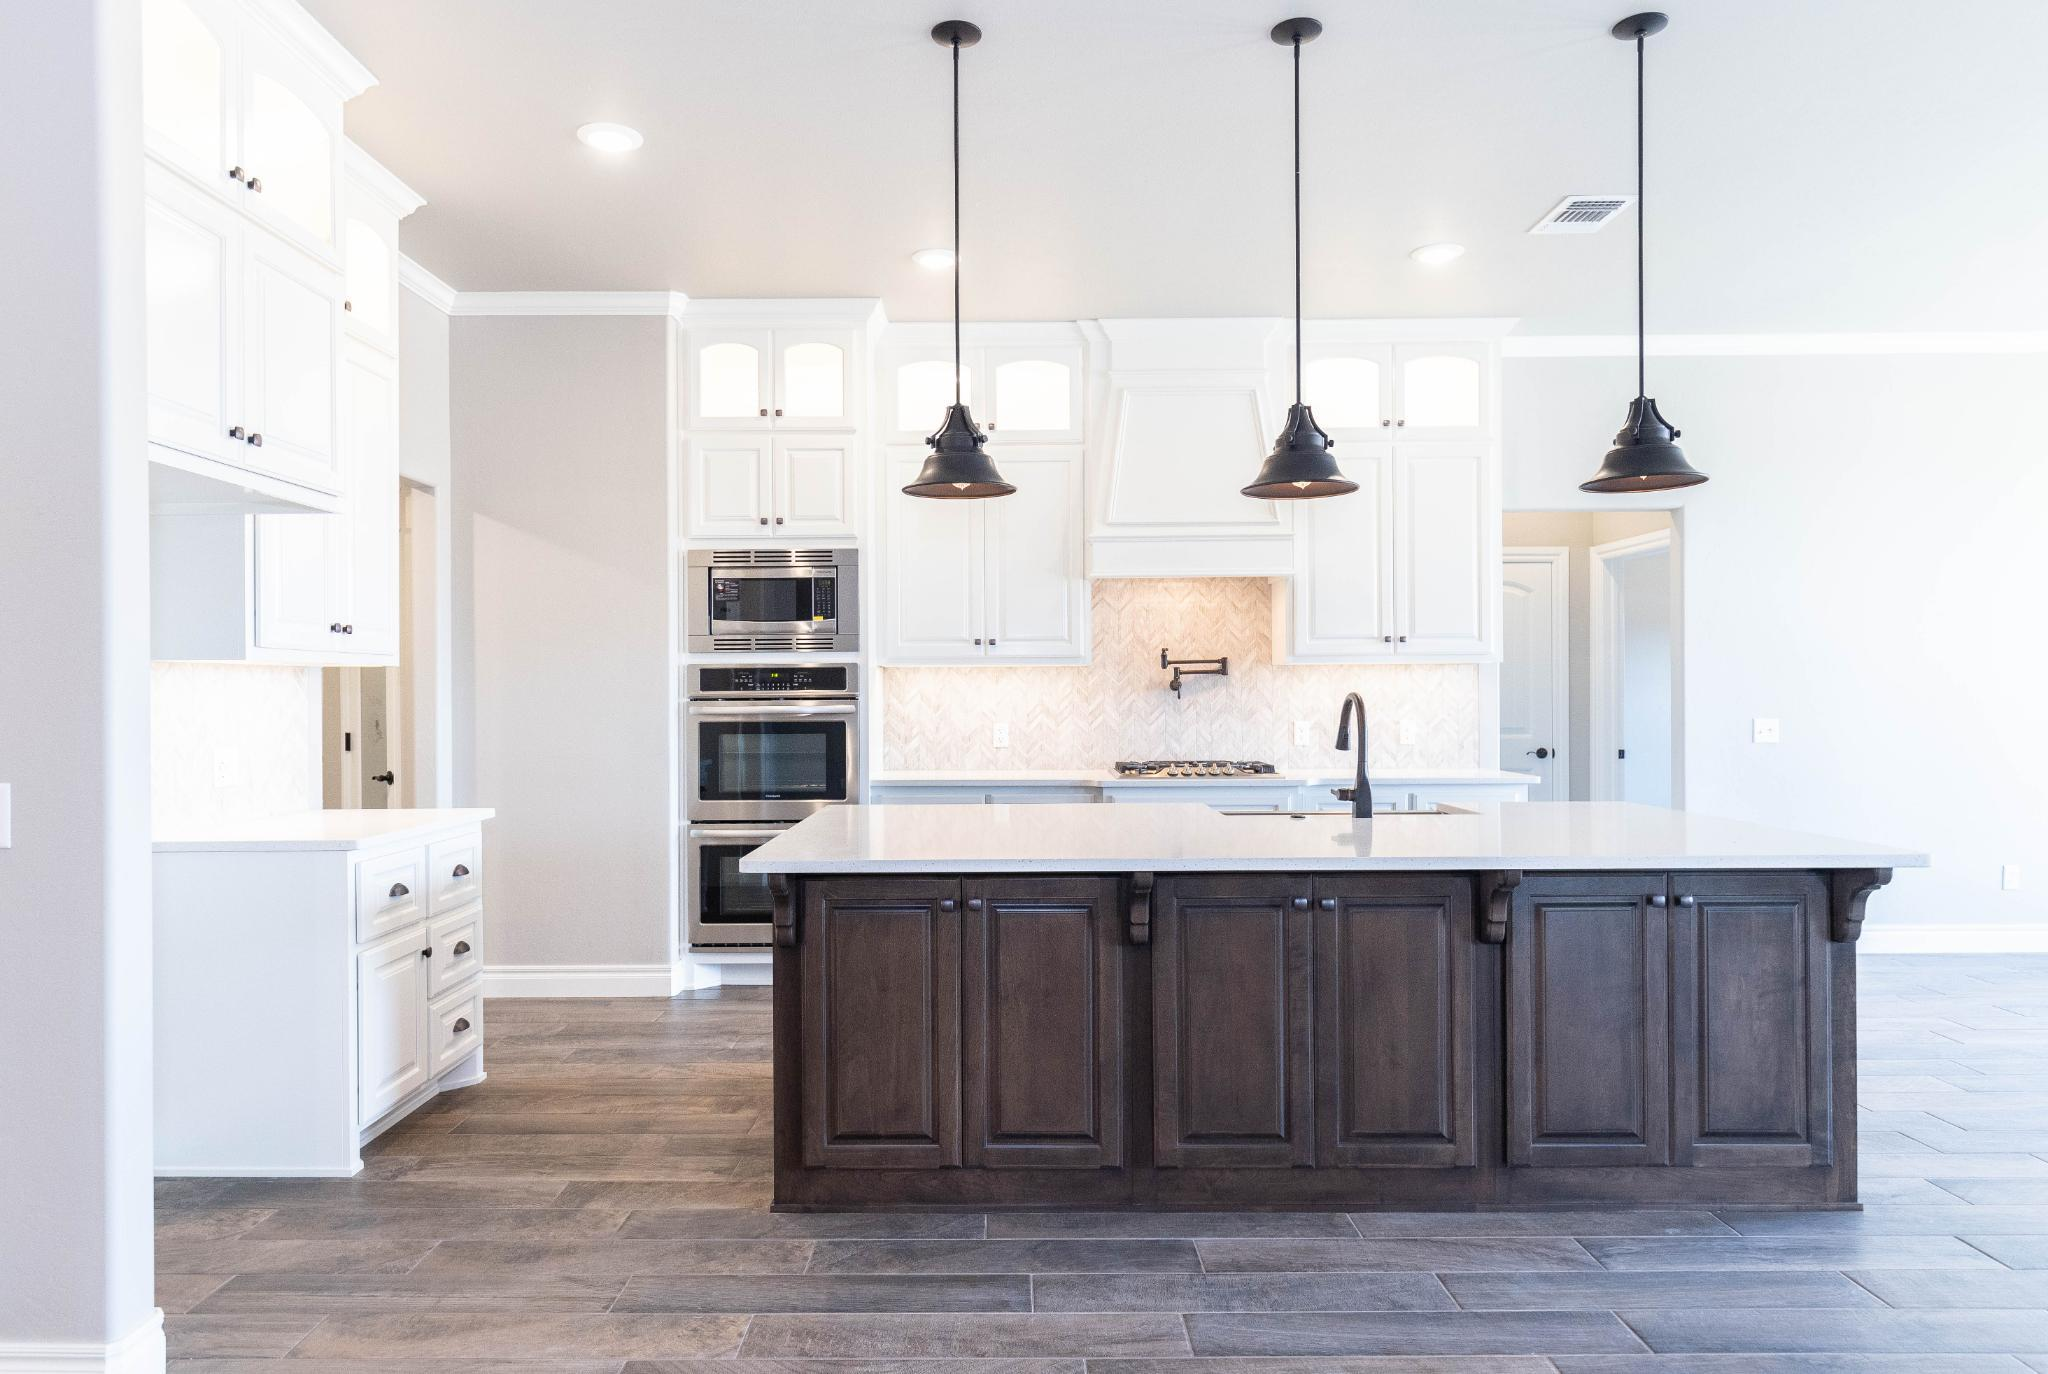 Kitchen featured in the Poppey Half Bath By Homes By Taber in Oklahoma City, OK